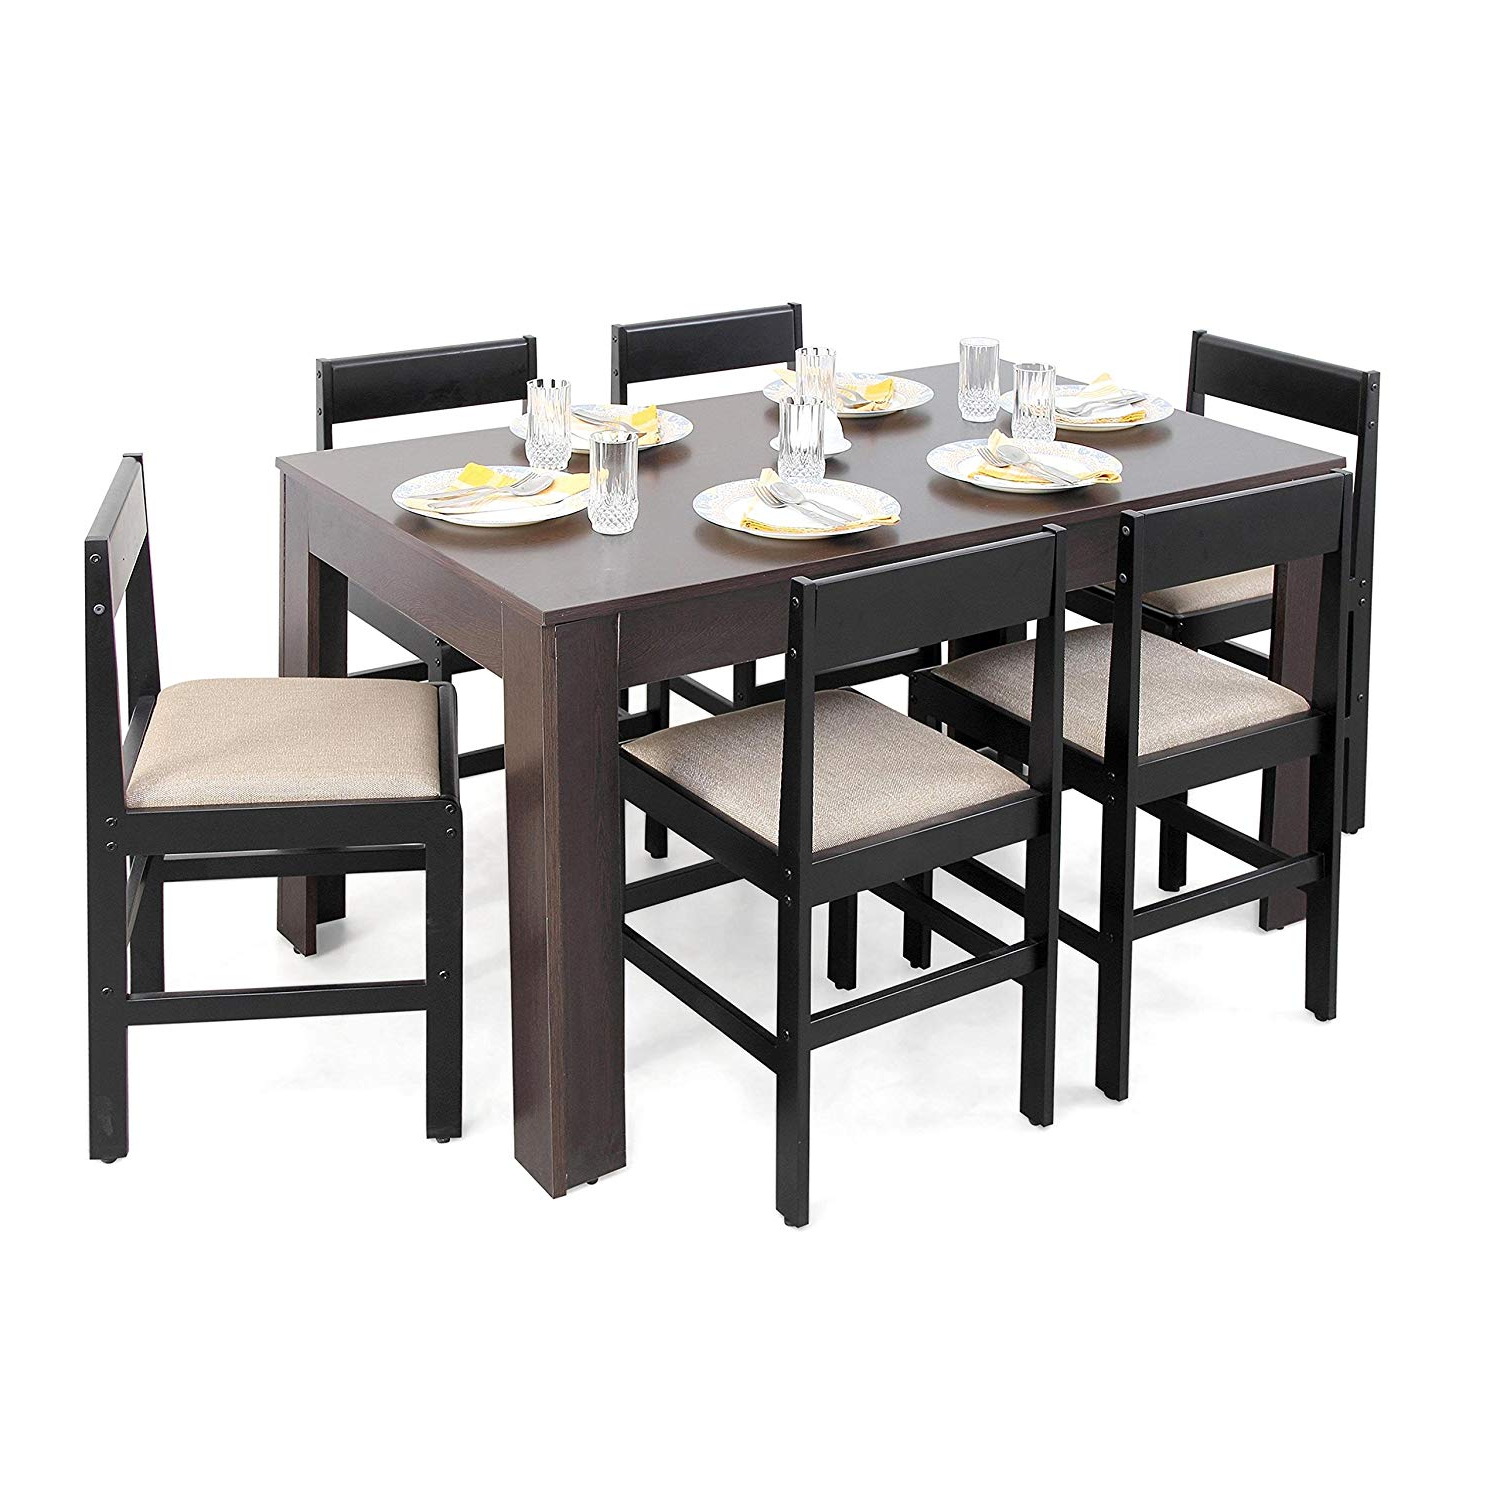 6 Seater Retangular Wood Contemporary Dining Tables Inside Current Best 6 Seater Dining Table Set Under 30000 Online 2020 Descuss (View 18 of 30)